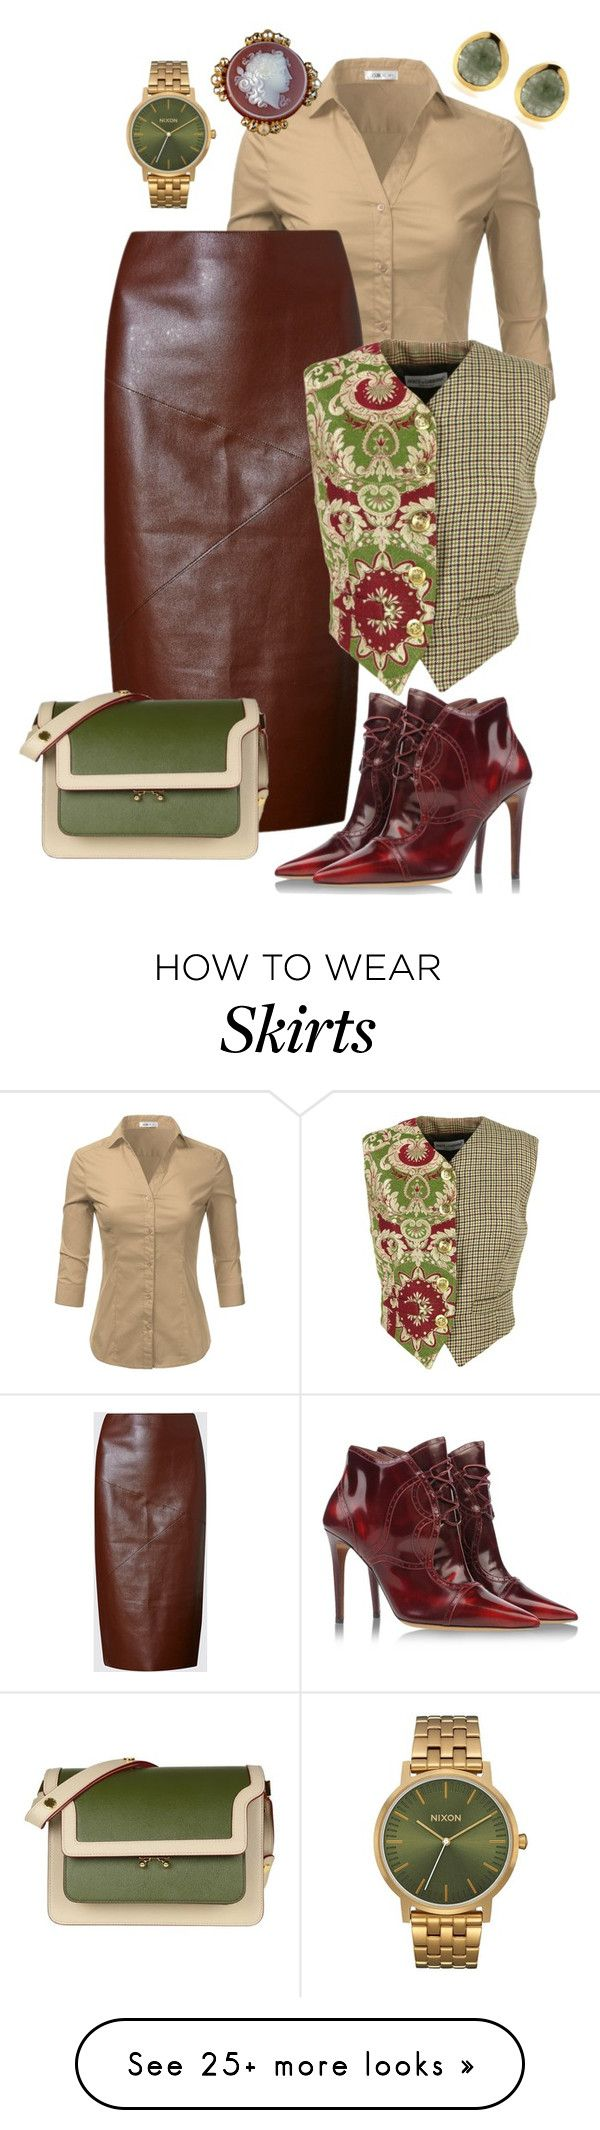 """Faux & Formal"" by donna-capodelupo on Polyvore featuring Doublju, M&S, Marni, Dolce&Gabbana, Tabitha Simmons, contestentry, leatherskirt and polyvorecontest"